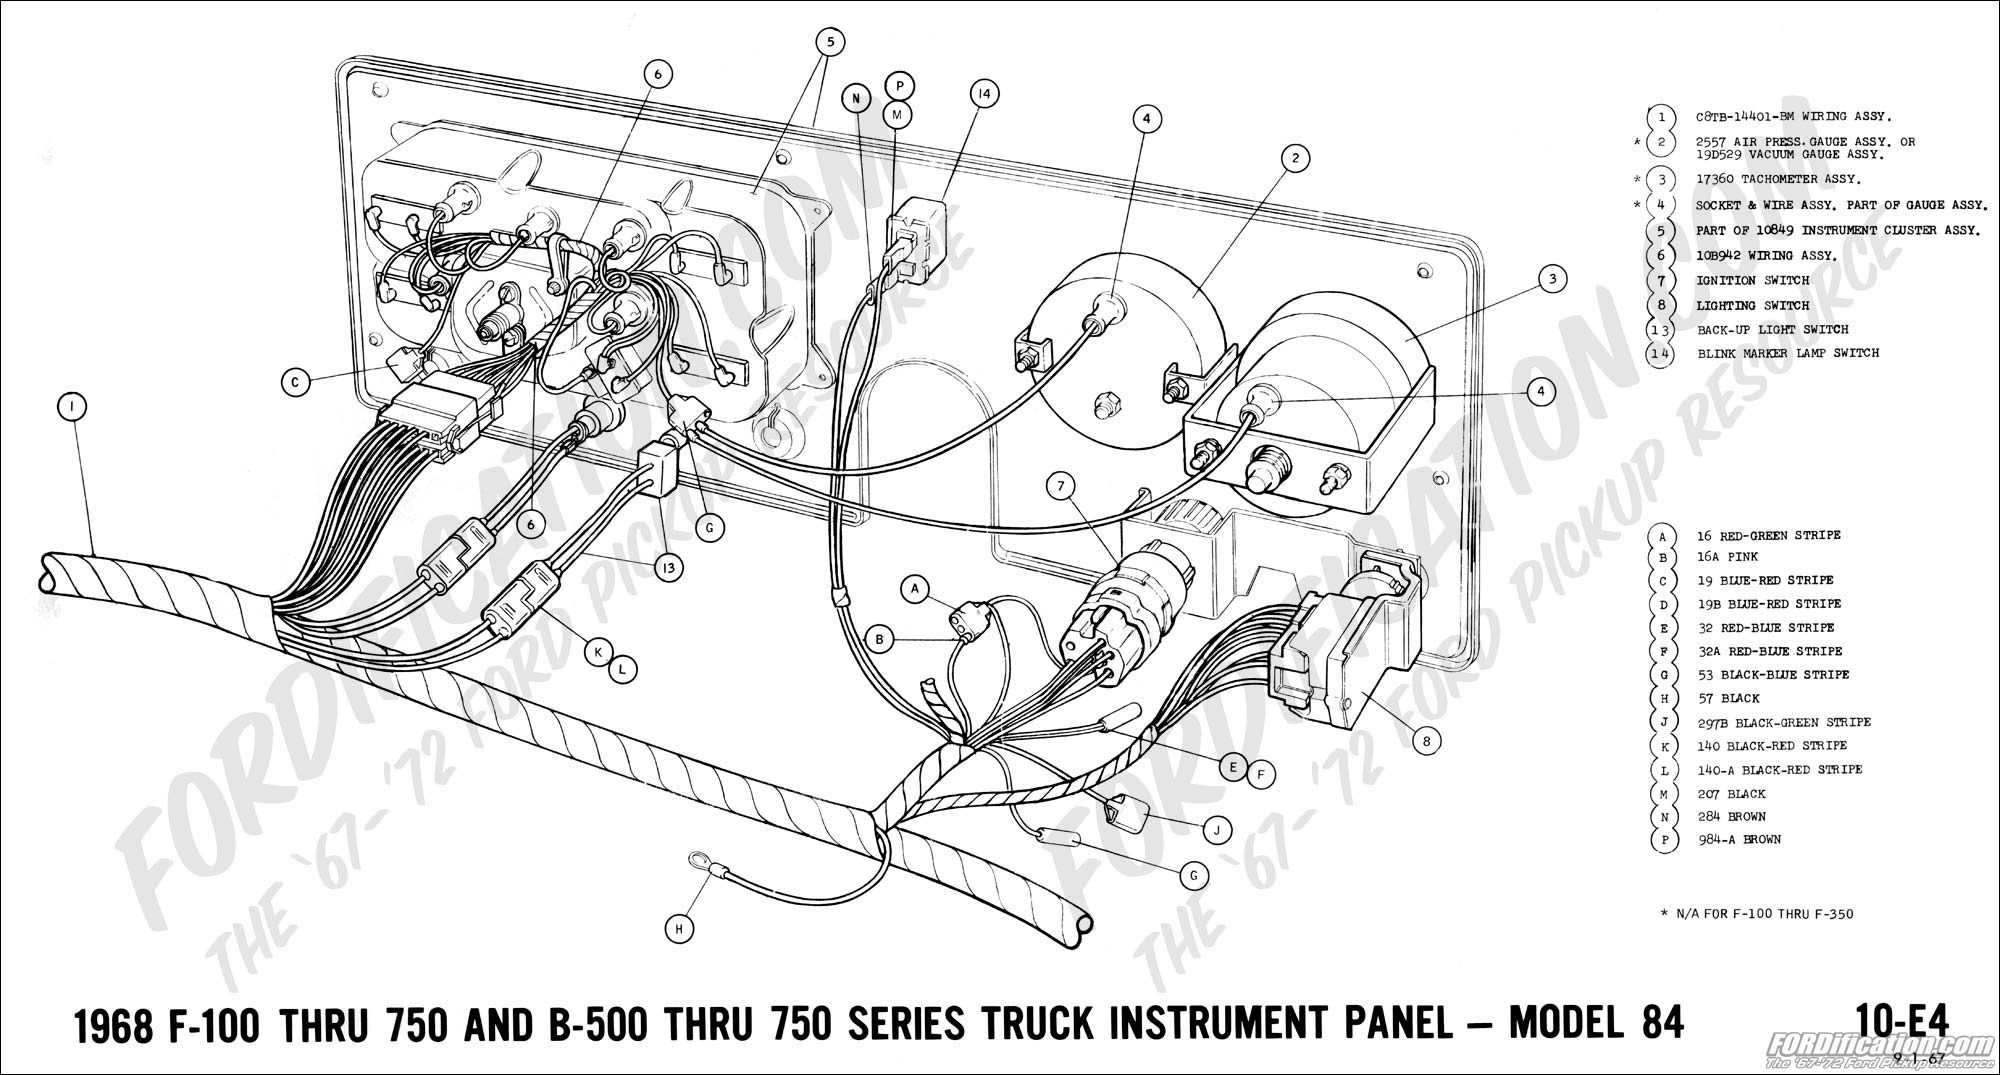 1977 C10 Fuel Diagram Opinions About Wiring Nova Ford Truck Technical Drawings And Schematics Section H Diagrams Short Bed